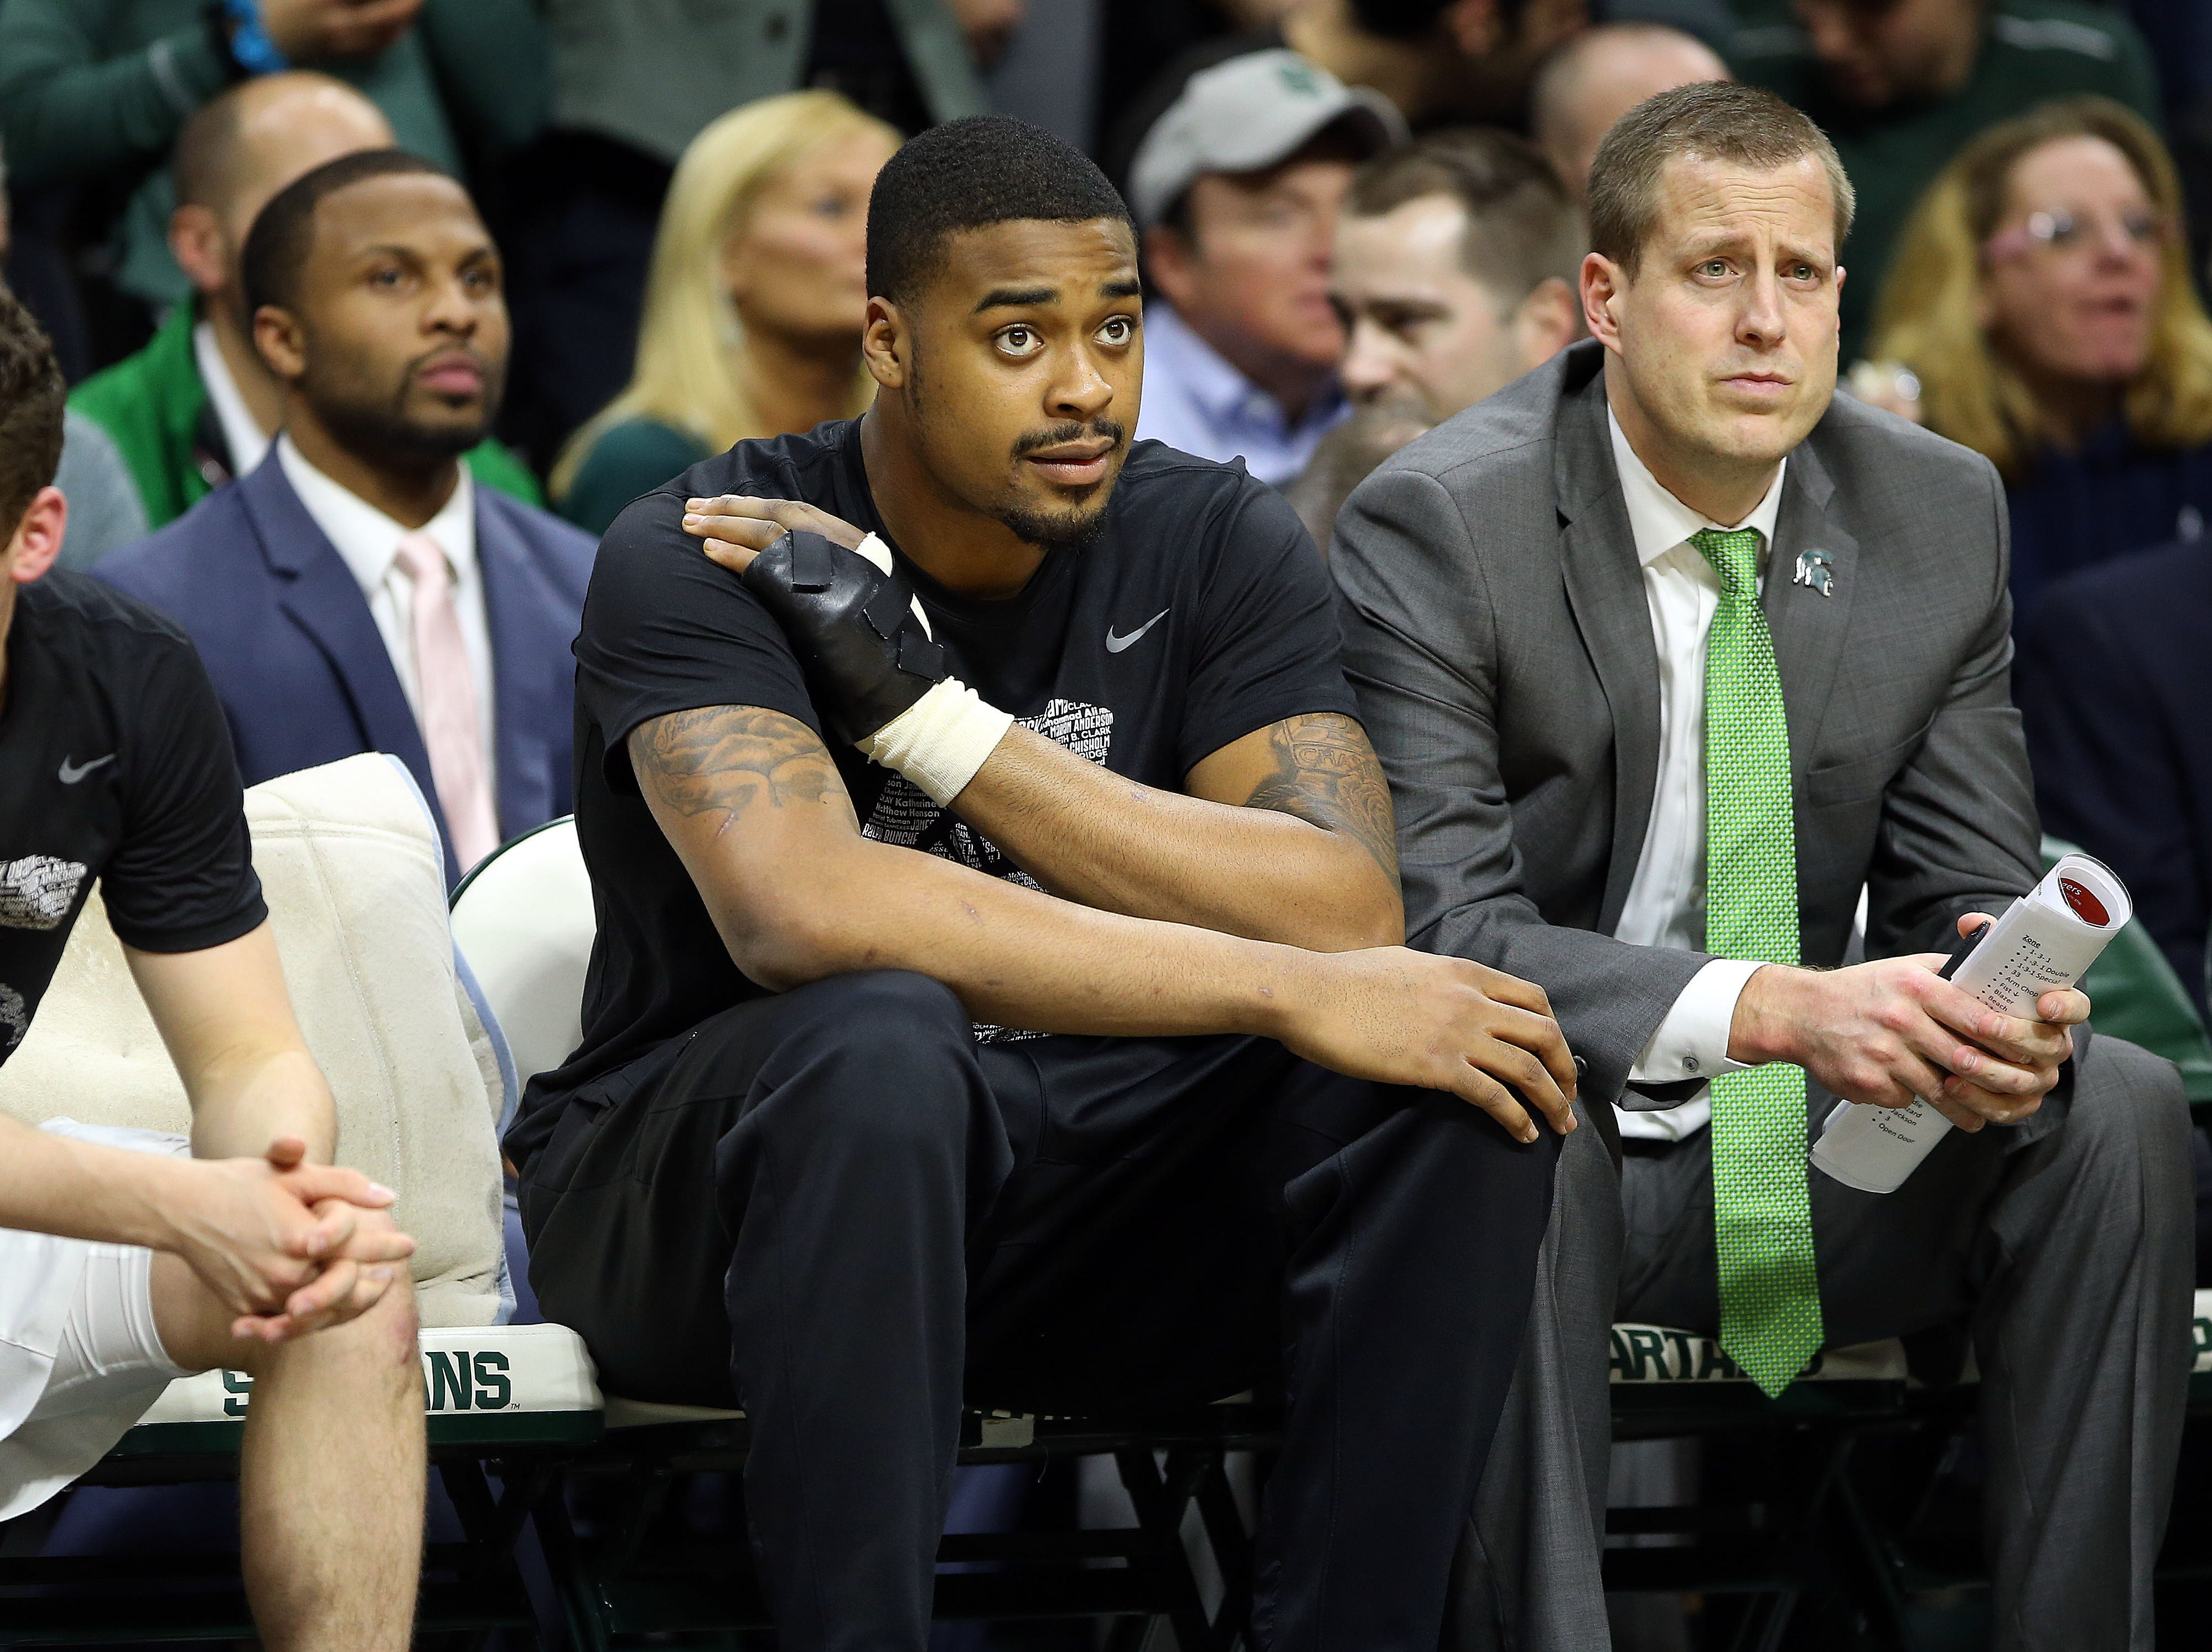 Feb 20, 2019; East Lansing, MI, USA; Michigan State Spartans forward Nick Ward (44) sits on the bench during the second half of a game against the Rutgers Scarlet Knights at the Breslin Center. Mandatory Credit: Mike Carter-USA TODAY Sports